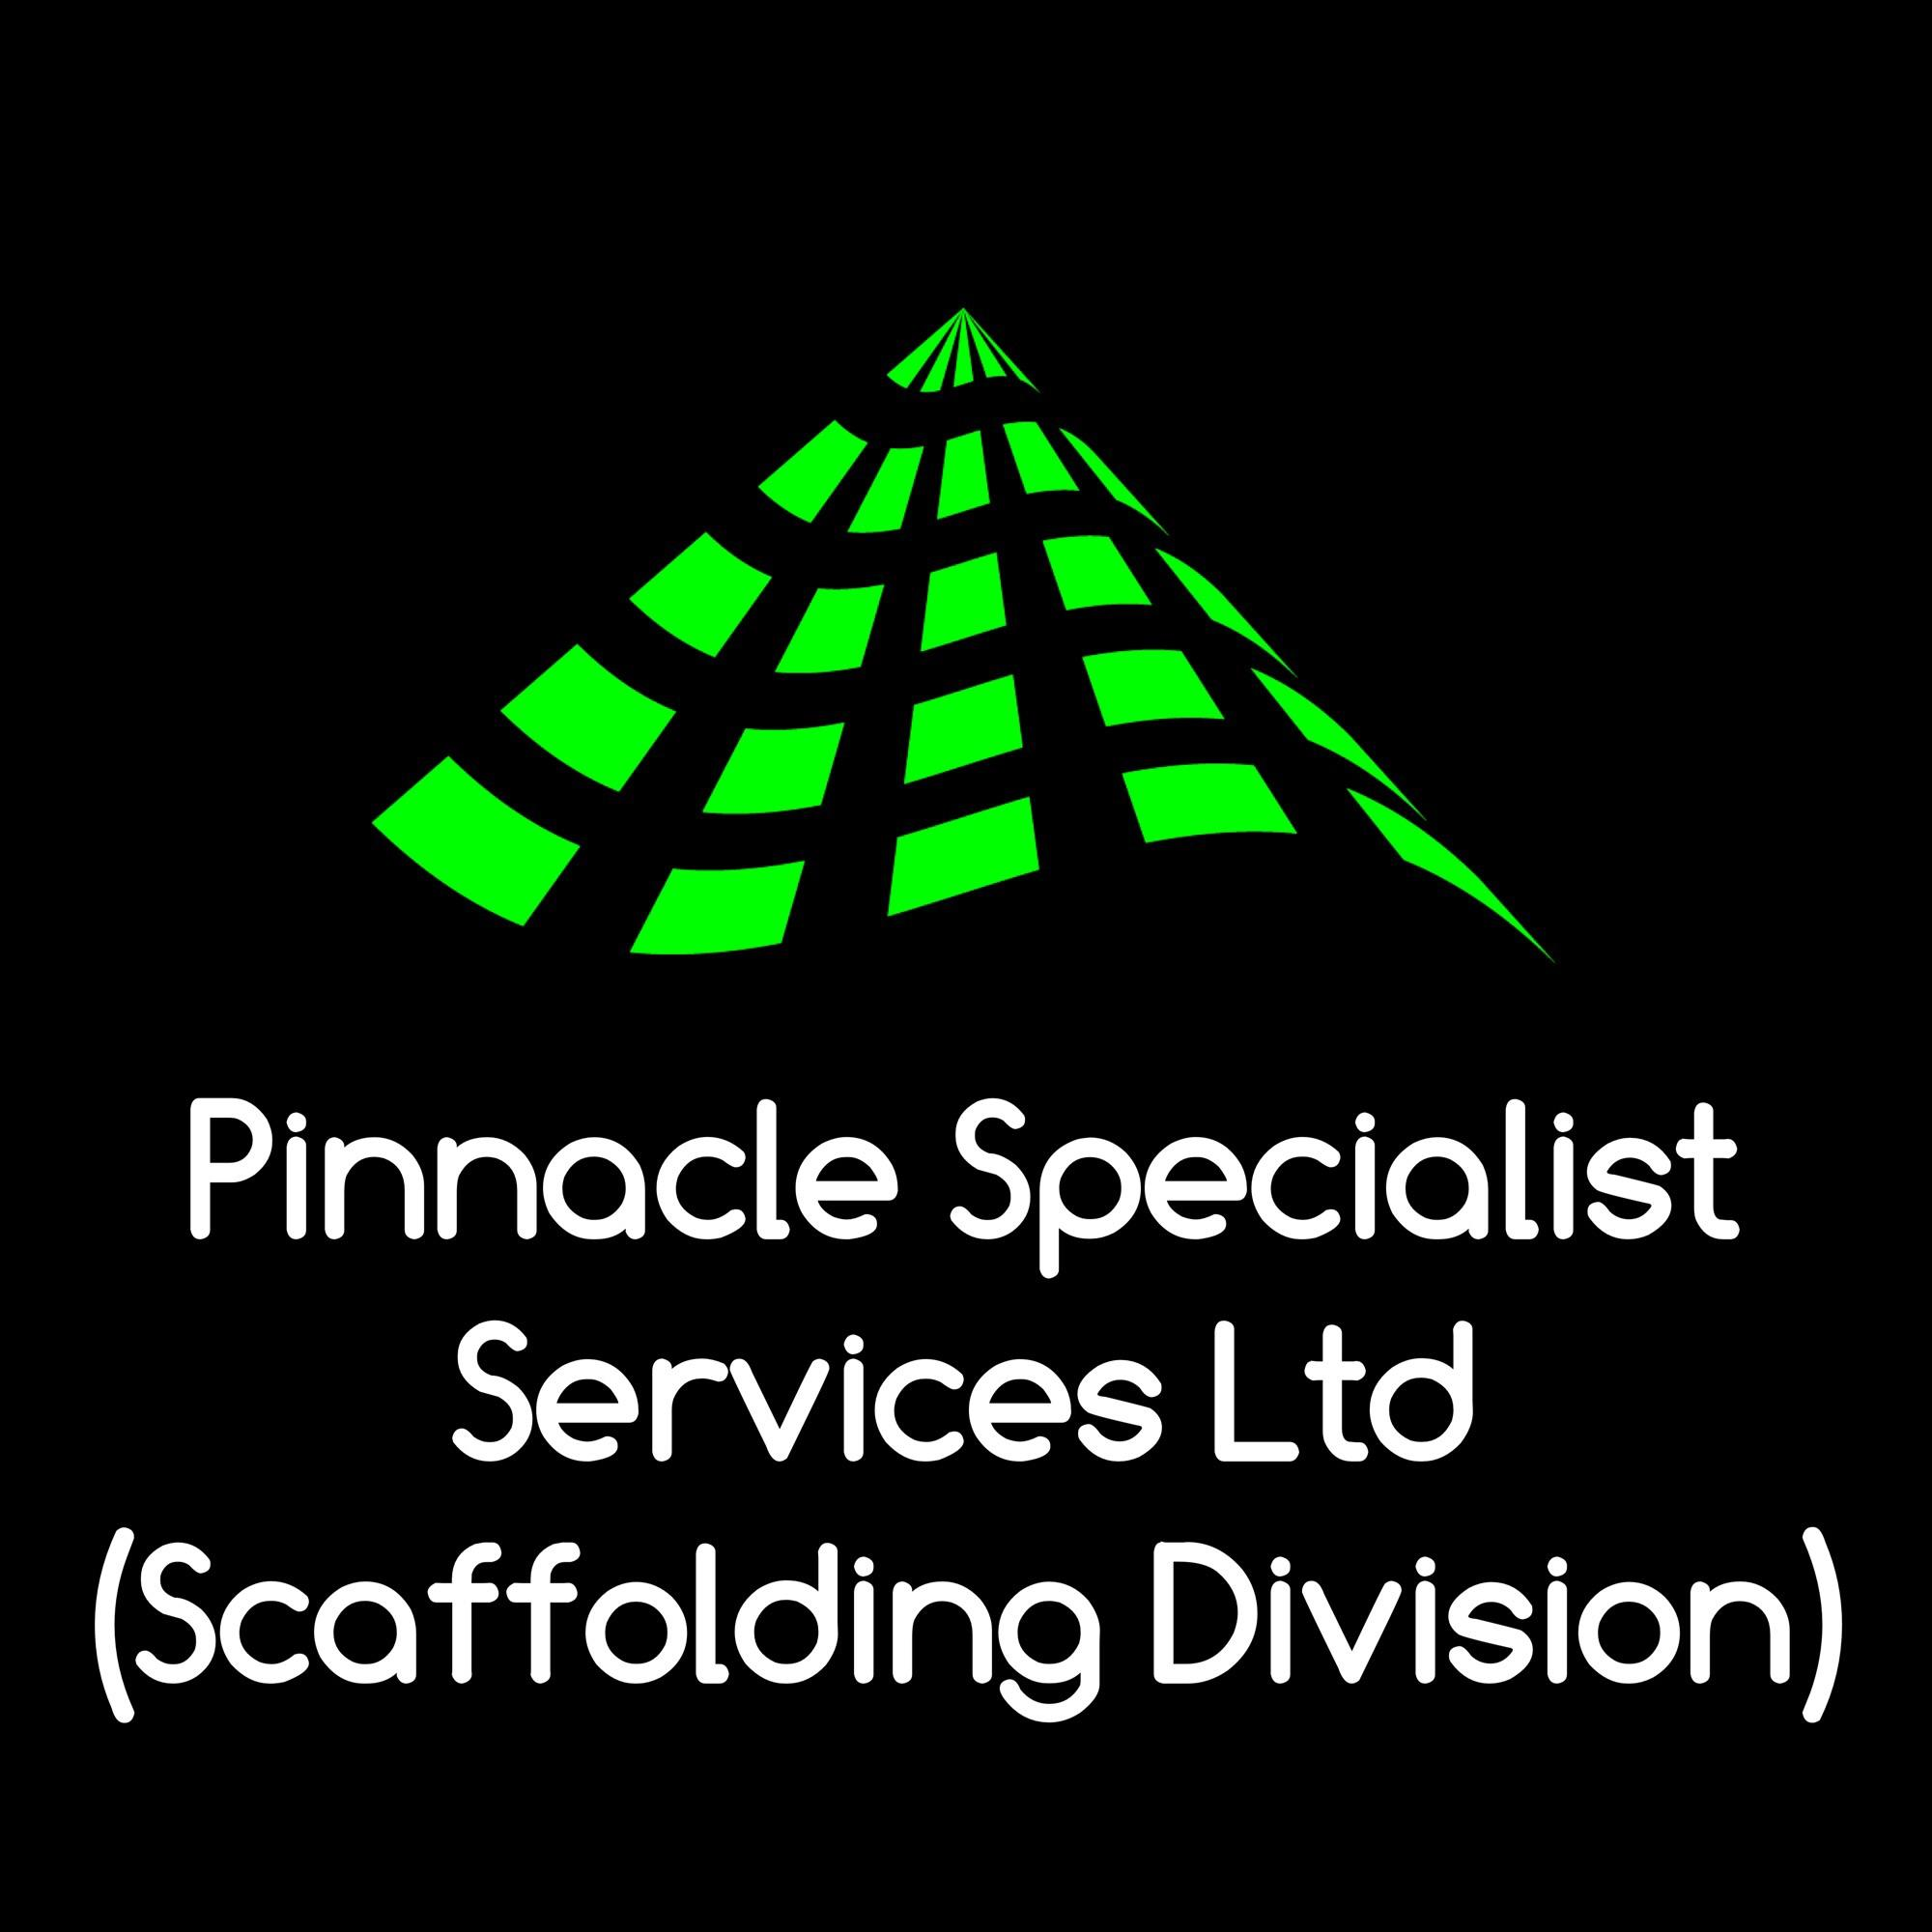 Pinnacle Scaffolding Services